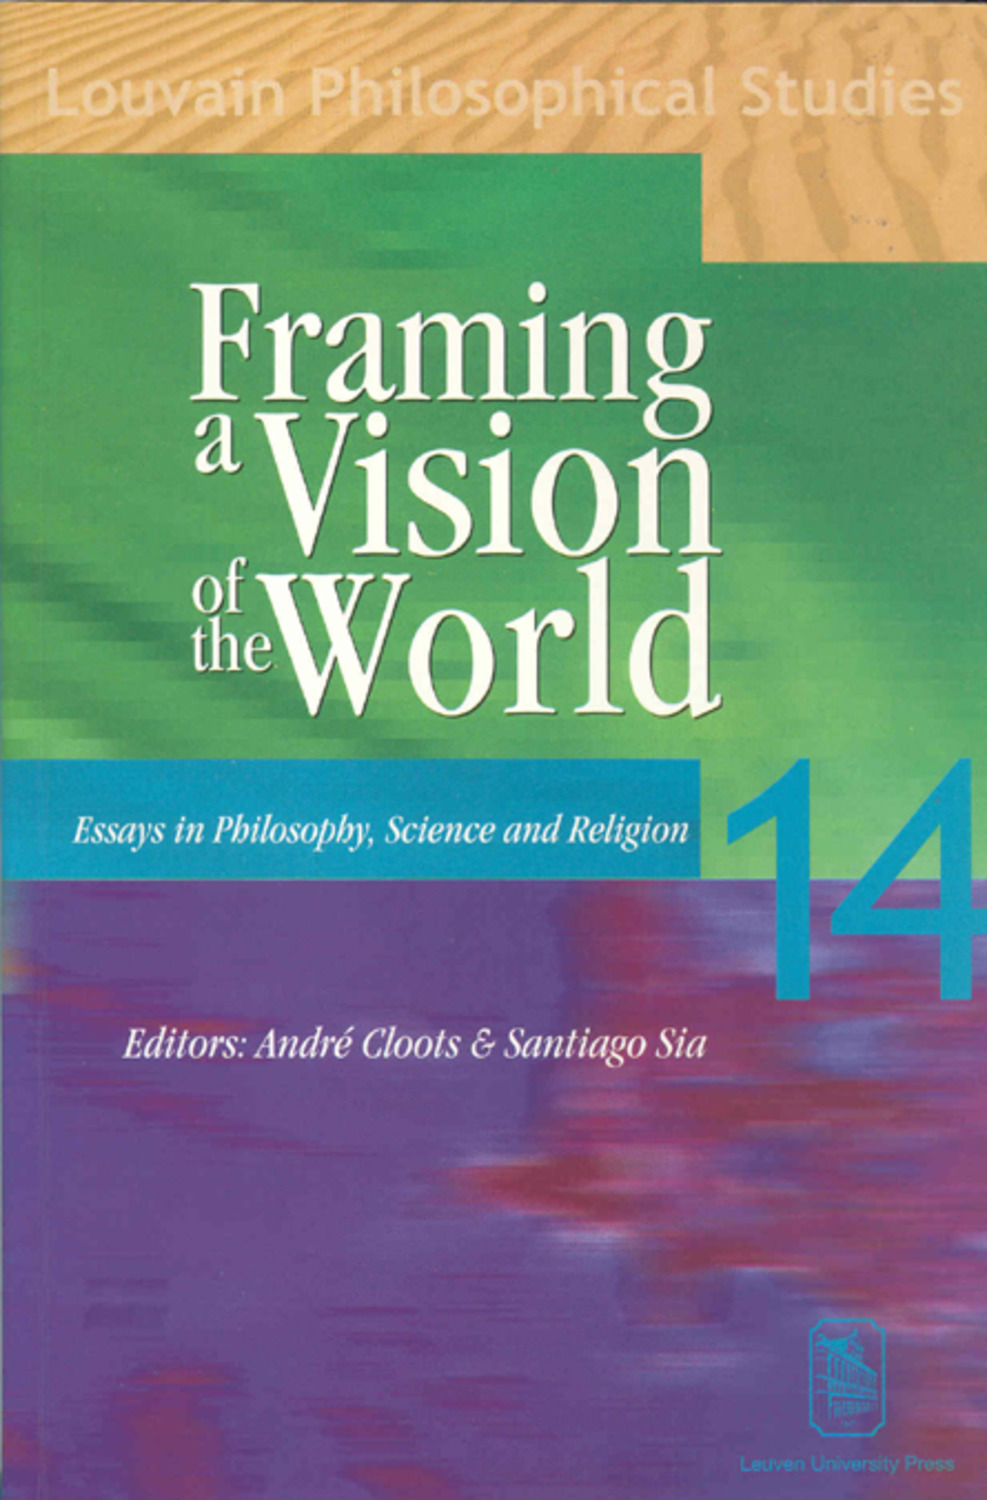 Framing a Vision of the World